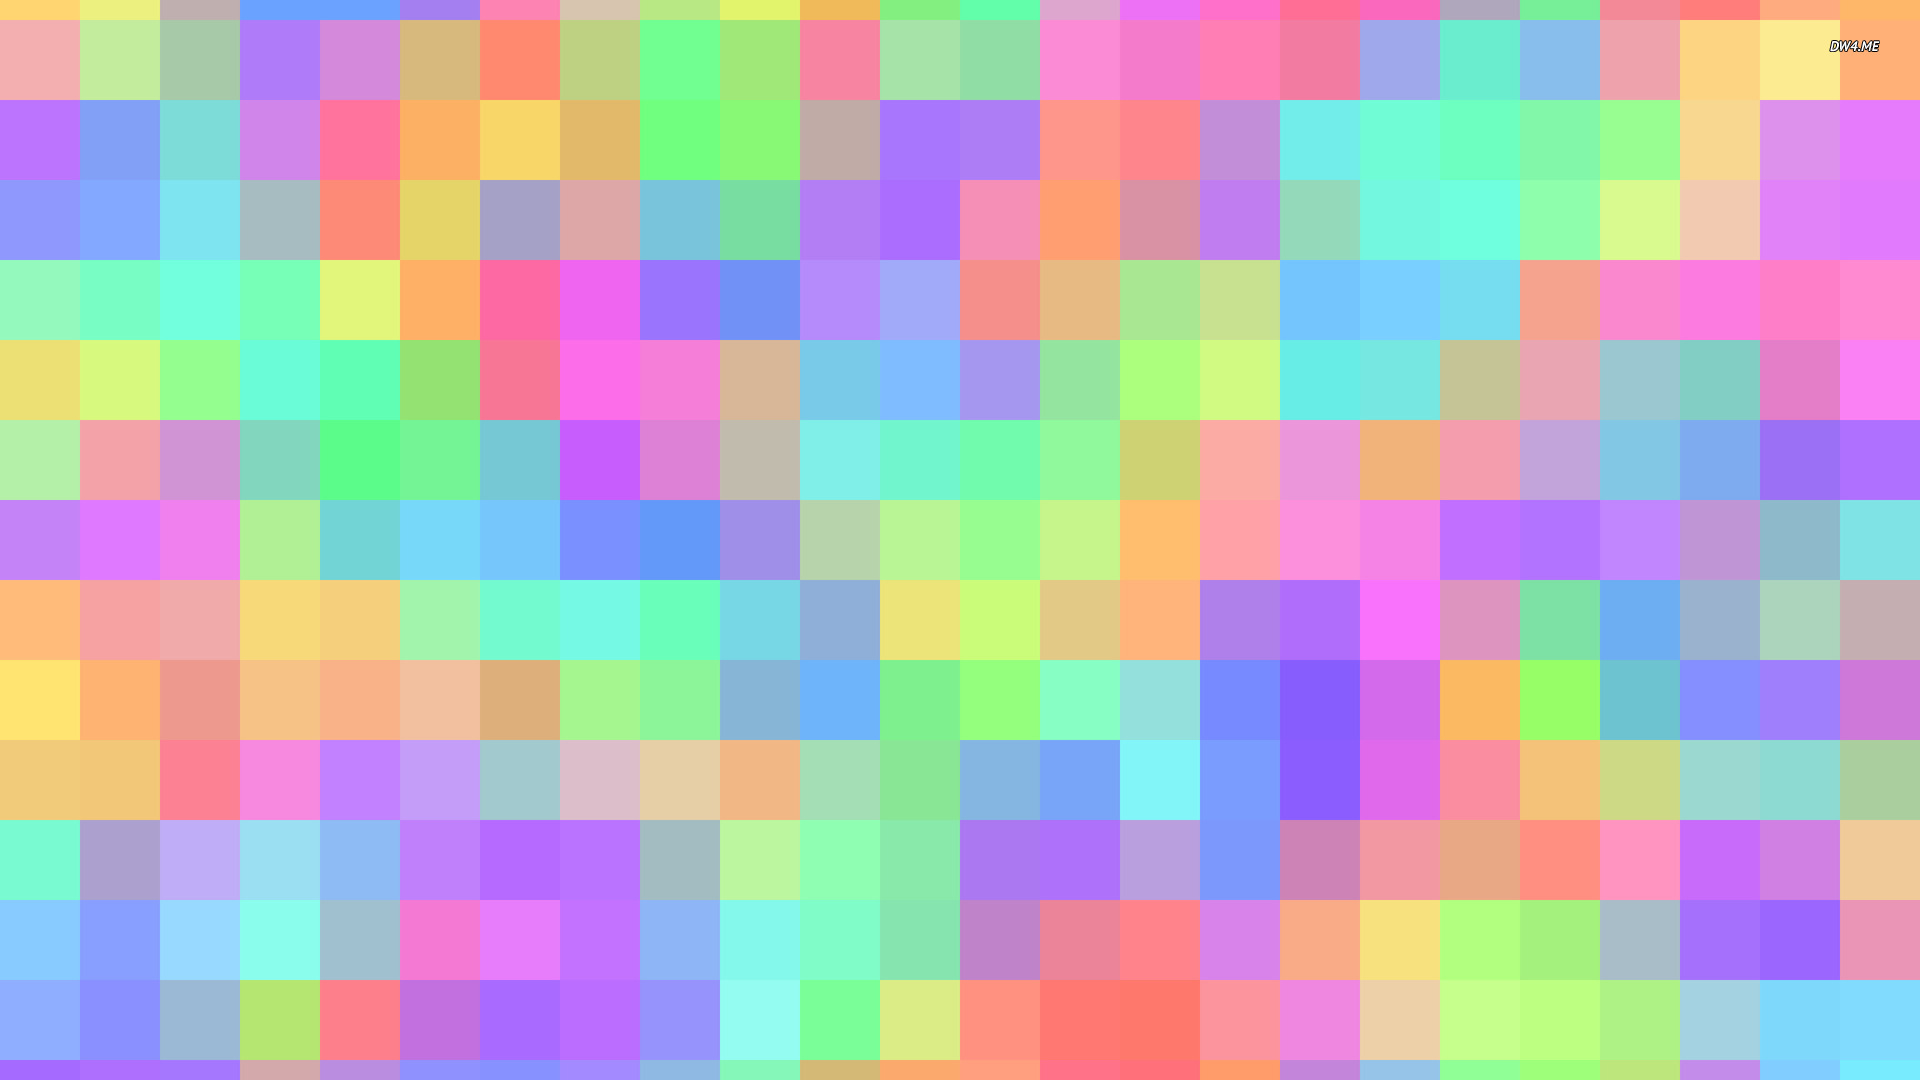 pastel squares wallpaper abstract wallpapers pastel squares wallpaper 1920x1080